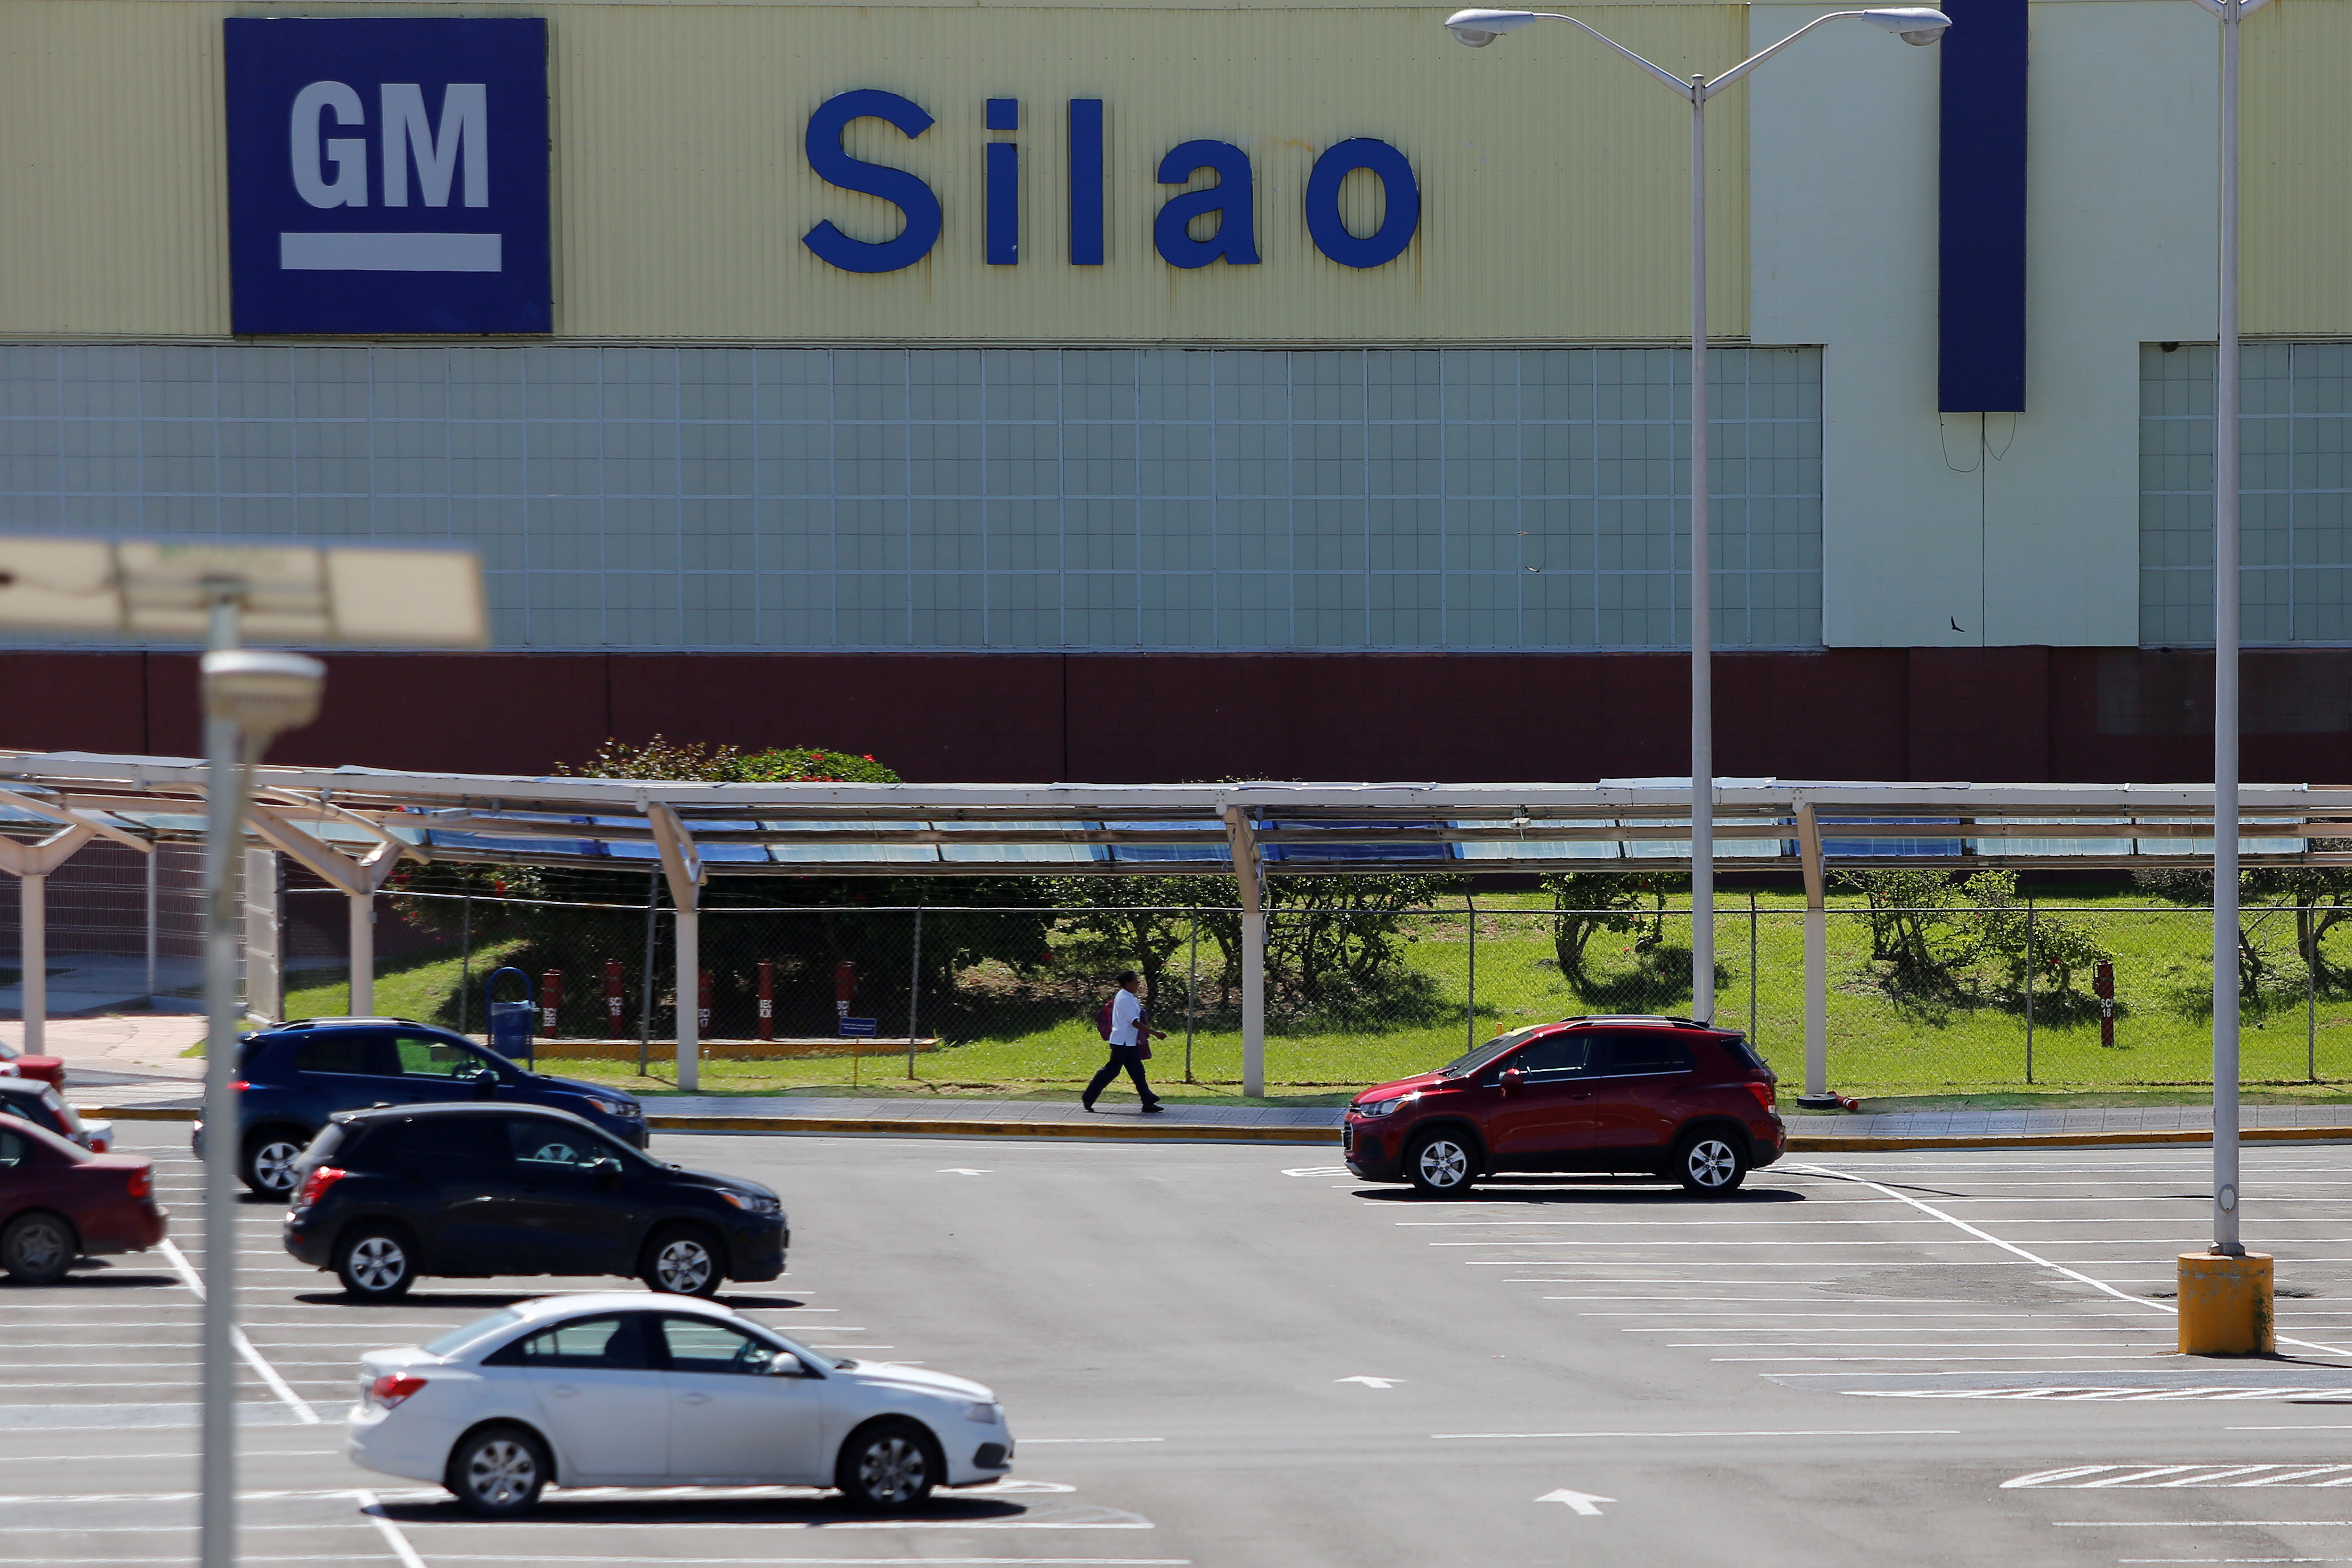 A general view shows the GM pickup and transmission plant in Silao, Mexico October 9, 2015. Picture taken October 9, 2019. REUTERS/Sergio Maldonado/File Photo